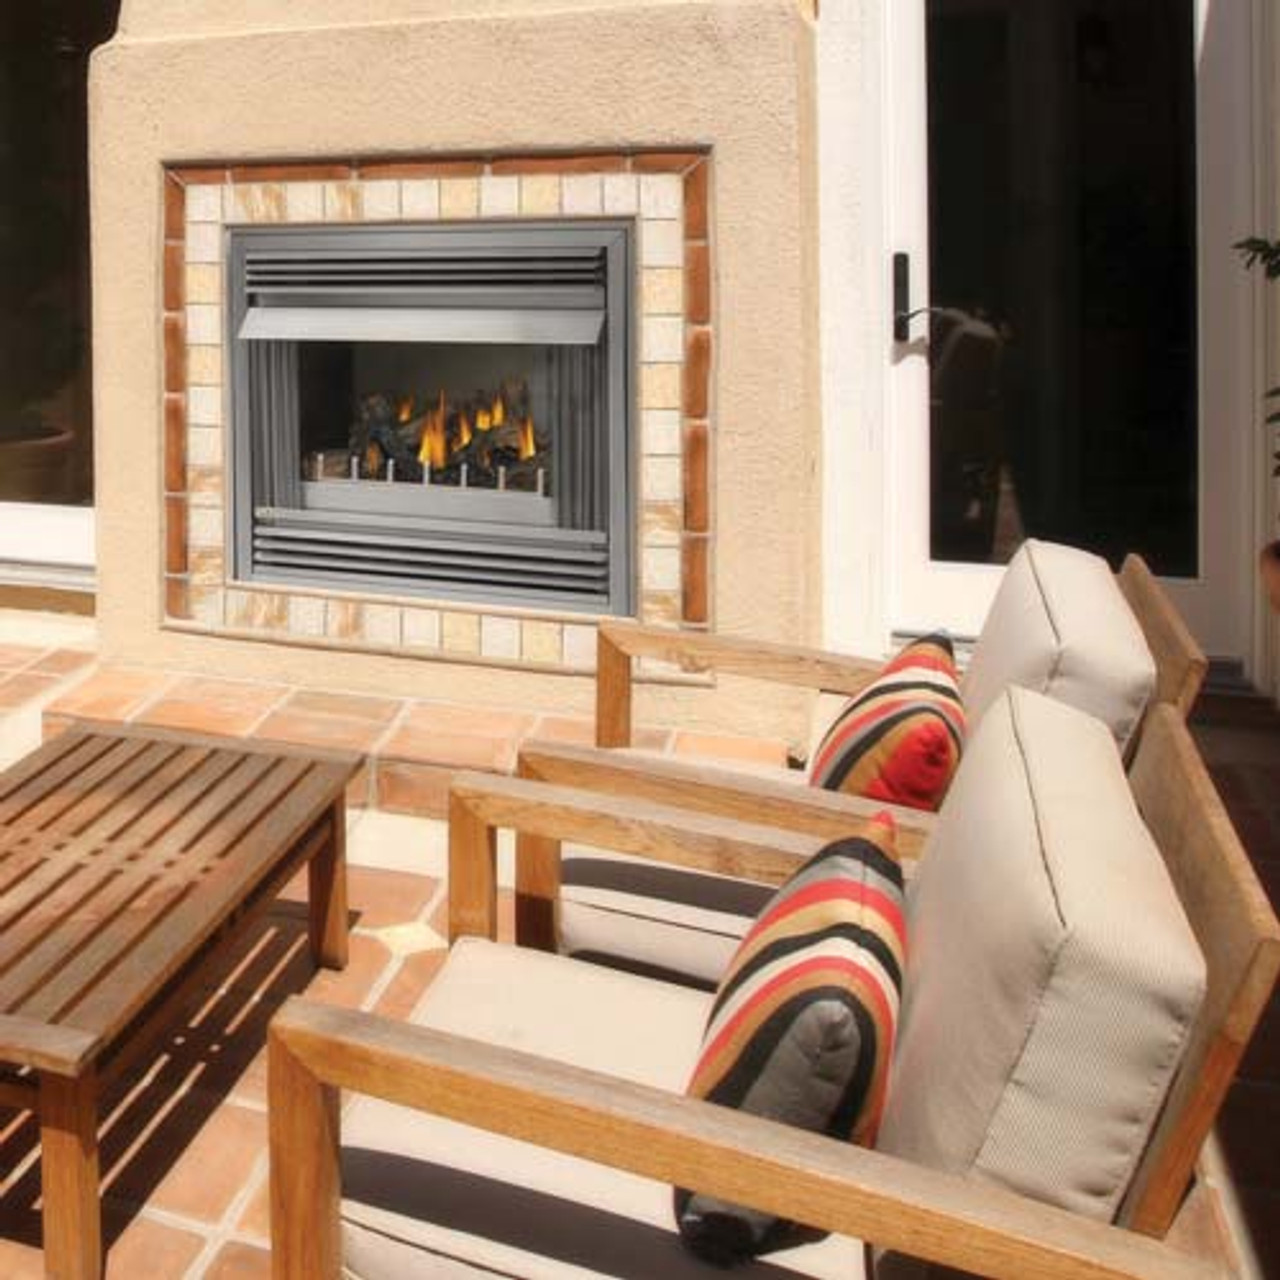 BEST PRICES ON NAPOLEON OUTDOOR FIREPLACES AT FIREPLACESRUS.NET NAPOLEON GSS36N